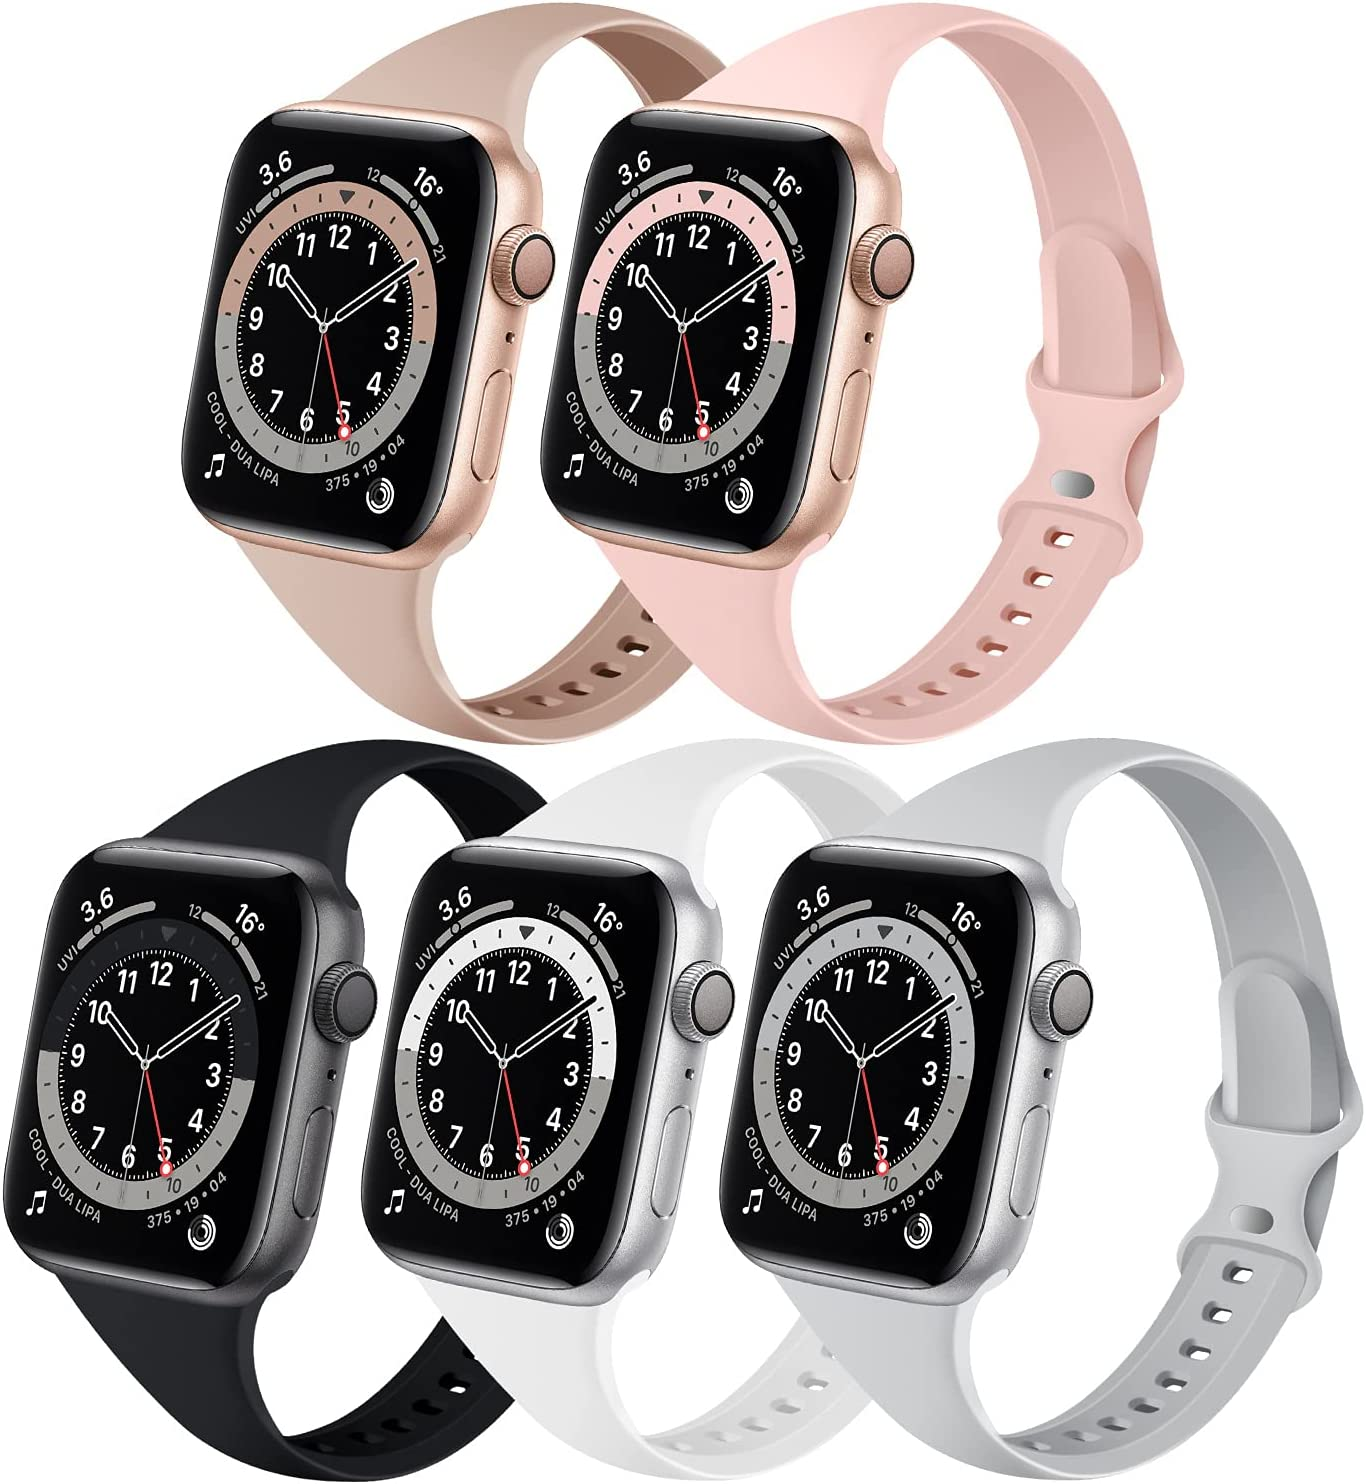 Bands Compatible with Apple Watch 38mm 40mm, 5 Pack Slim Thin Narrow Replacement Silicone Sport Strap for iWatch Series SE 1/2/3/4/5/6, Milk Tea/Pink Sand/Black/White/Gray 38mm/40mm